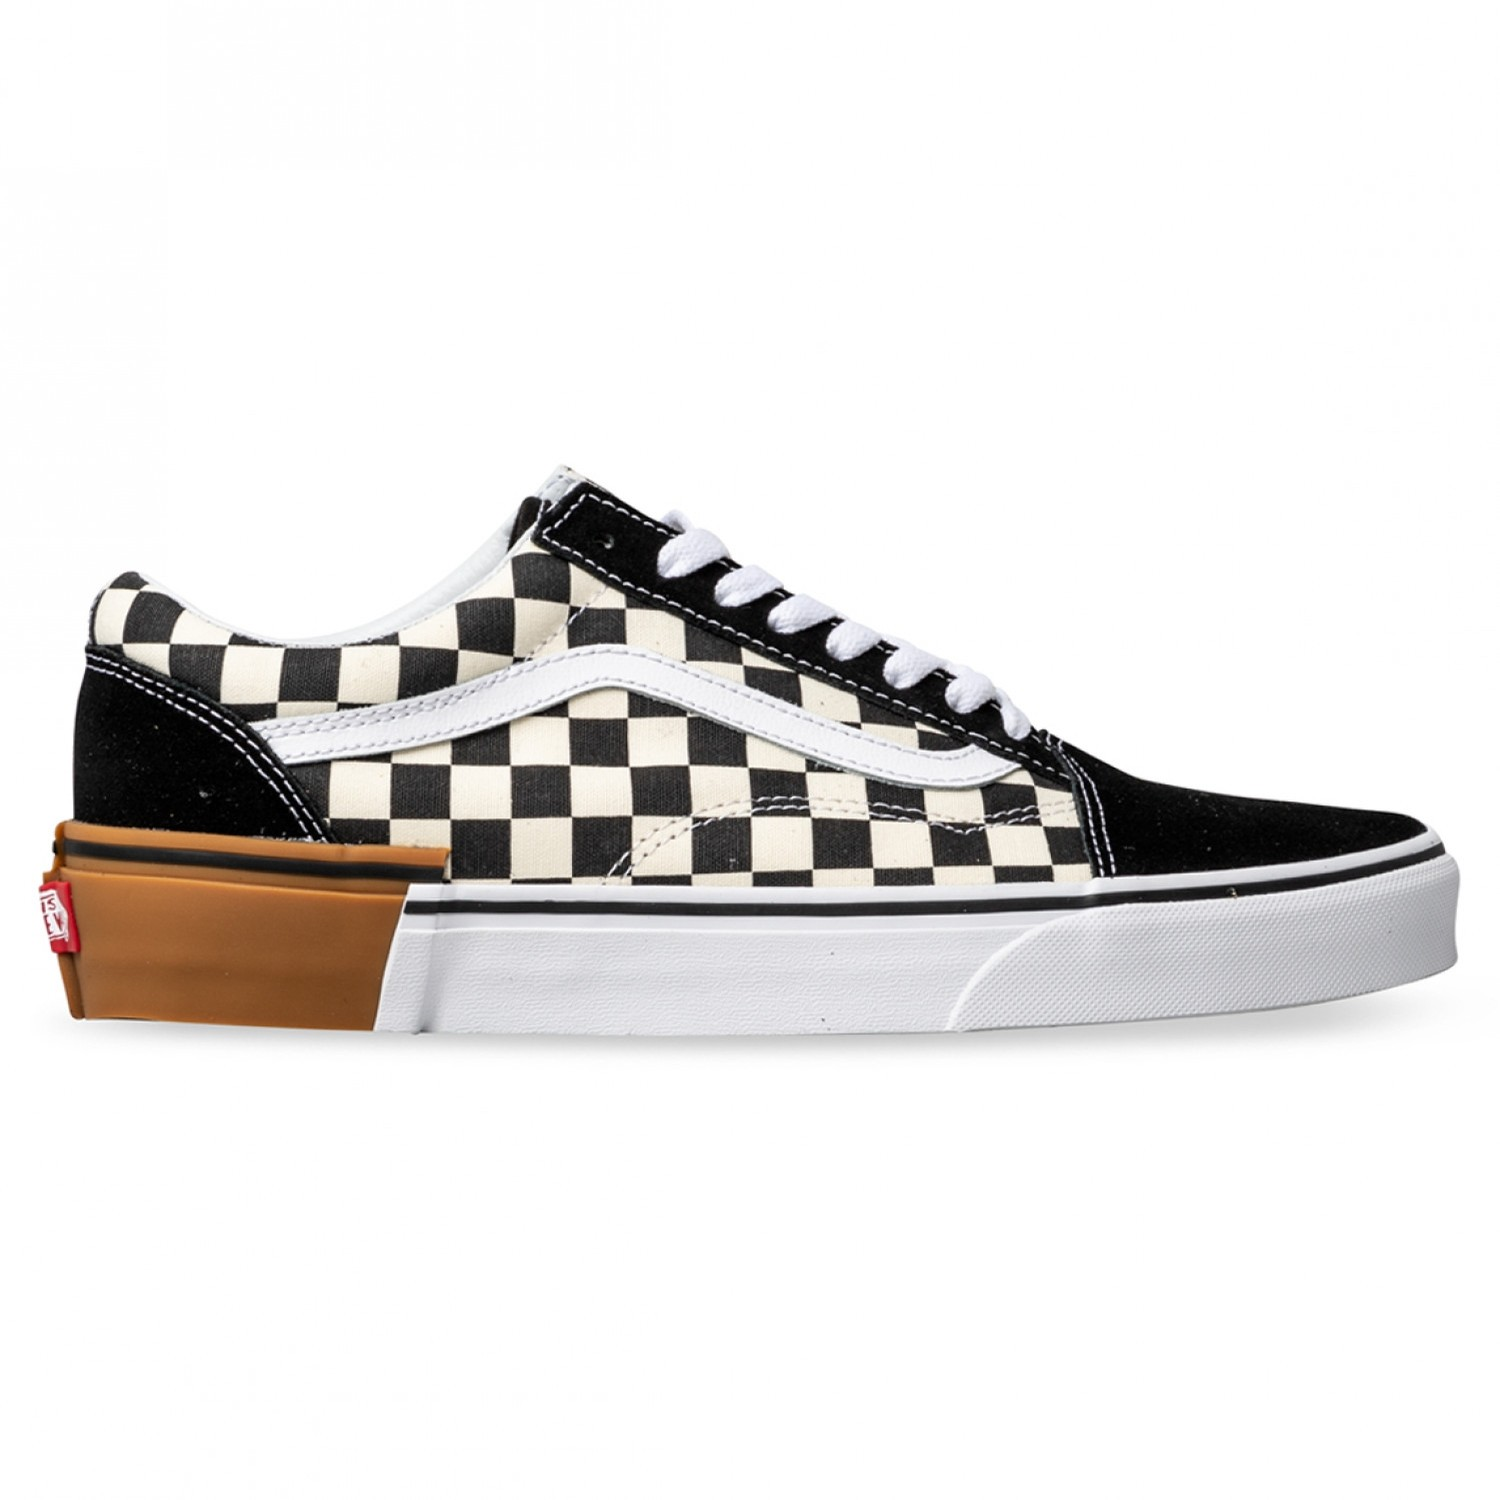 Old Skool (Gum Block) Checkerboard Black/White